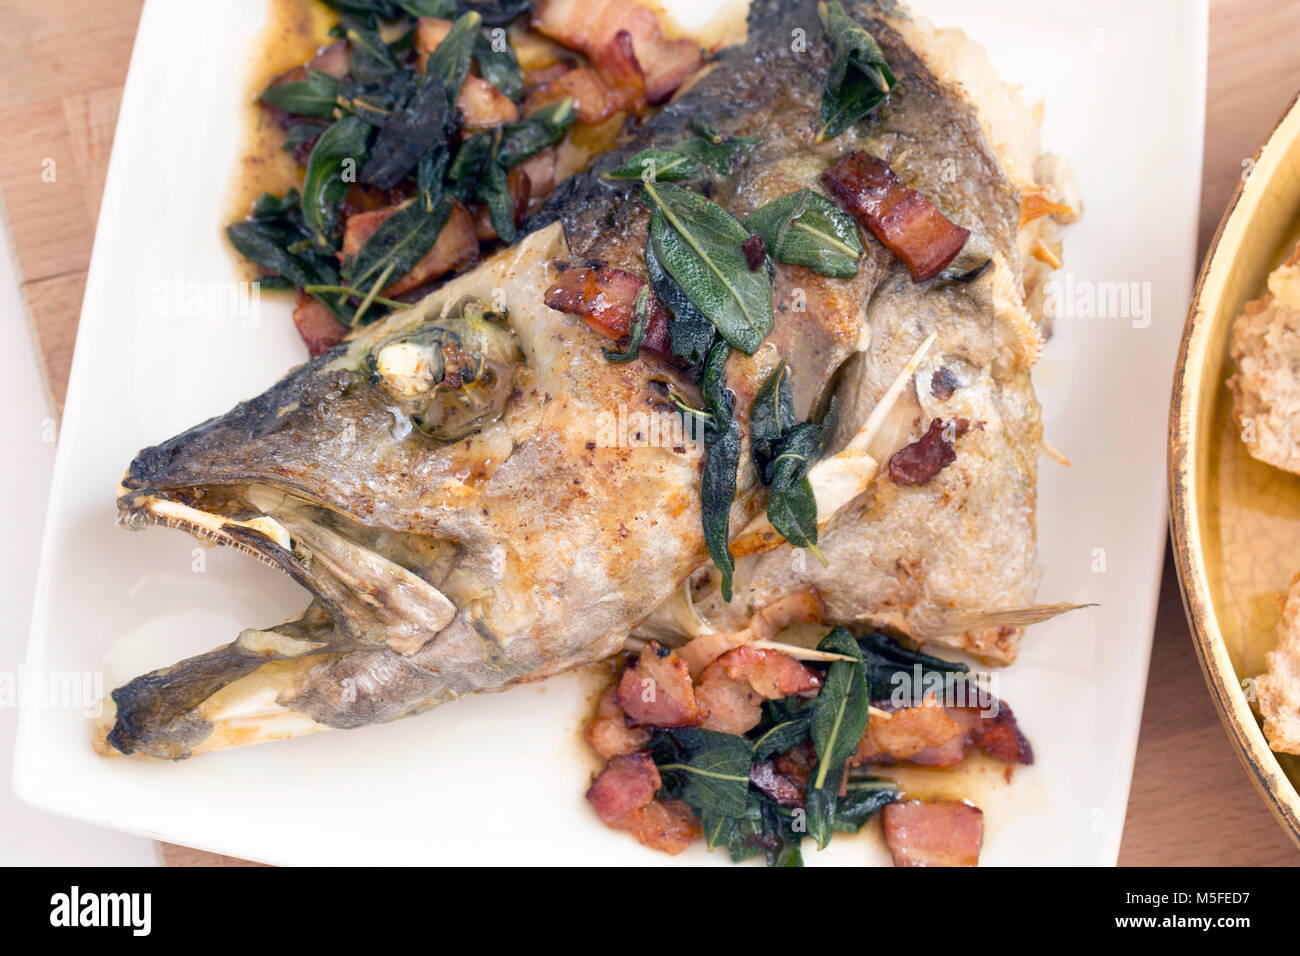 The head of a pollack caught on rod and line that has been grilled and served with fried bacon and fresh sage. Dorset - Stock Image